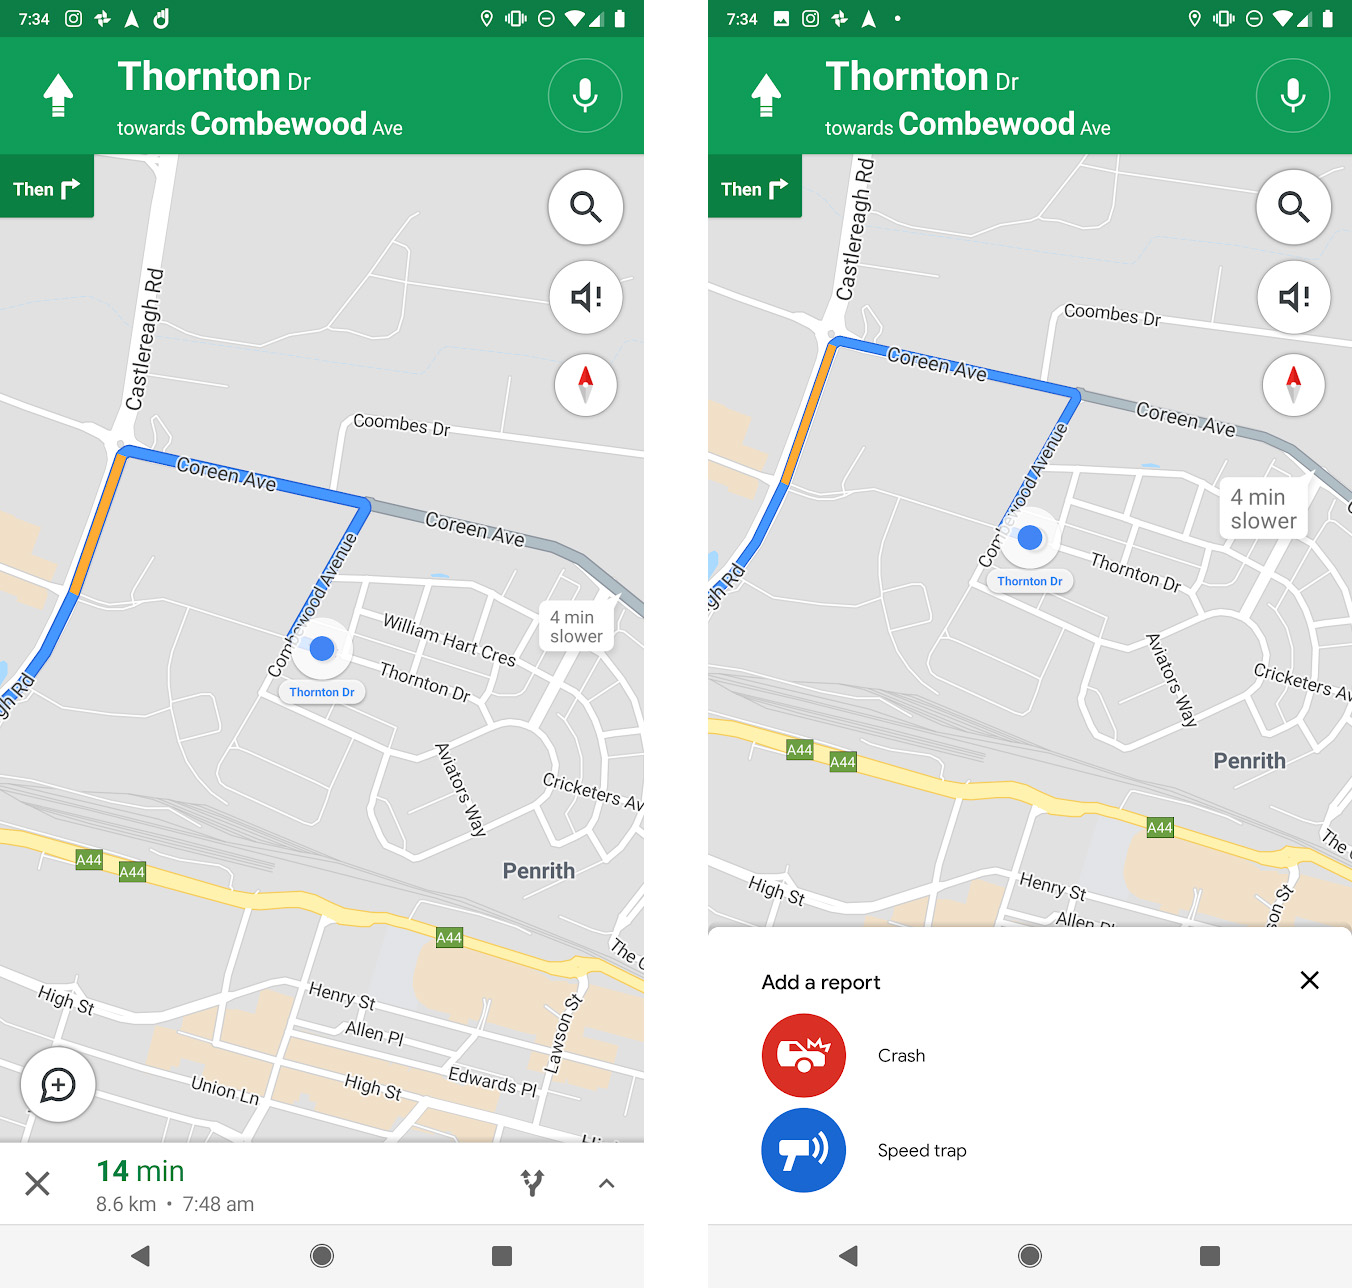 Google is testing crash and sd trap reporting in Maps on google latitude, bing maps, satellite map images with missing or unclear data, bing maps platform, nokia maps, google moon, google mars, google earth, google map maker, web mapping, route planning software, google voice, google sky, yahoo! maps, google search,